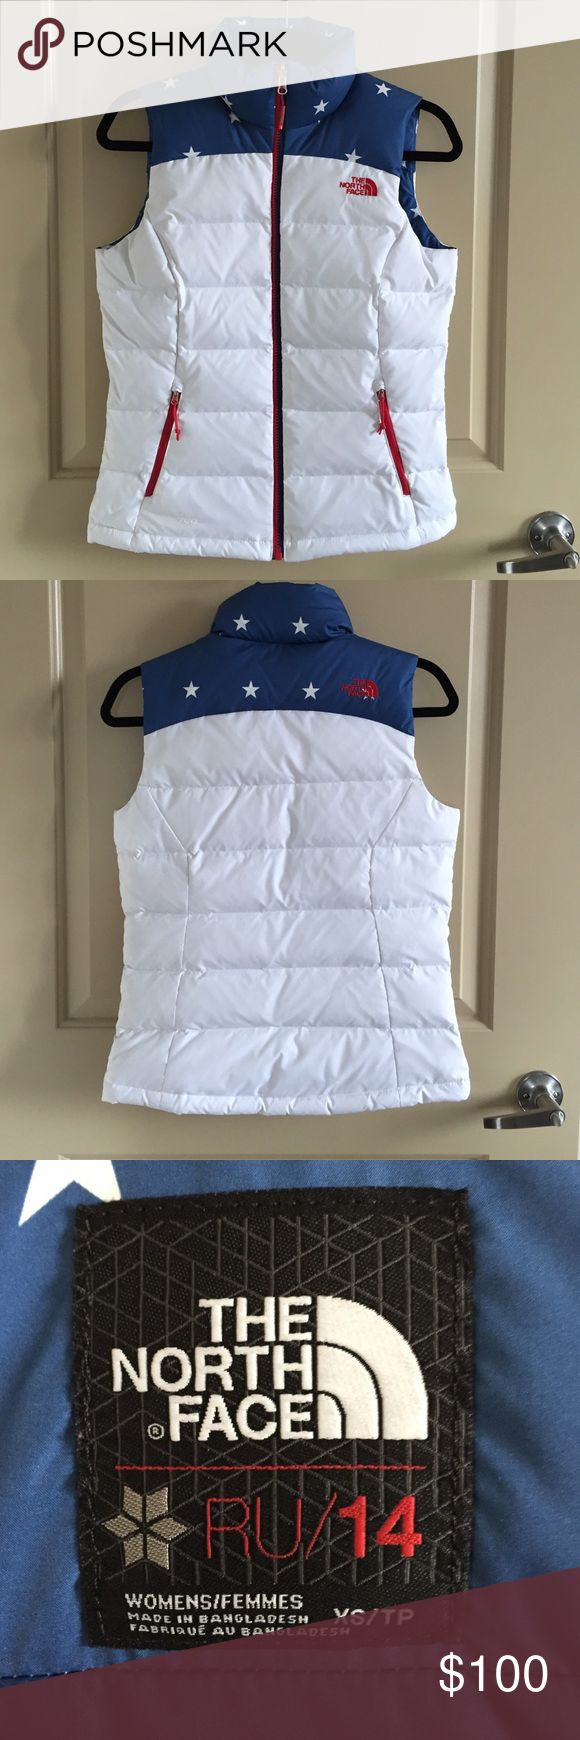 RARE North Face USA Puffer The North Face USA RU/14 puffer vest. Made for/during 2014 Sochi Olympic Games. Only worn once. Excellent condition. SUPER rare piece!! North Face Jackets & Coats Vests